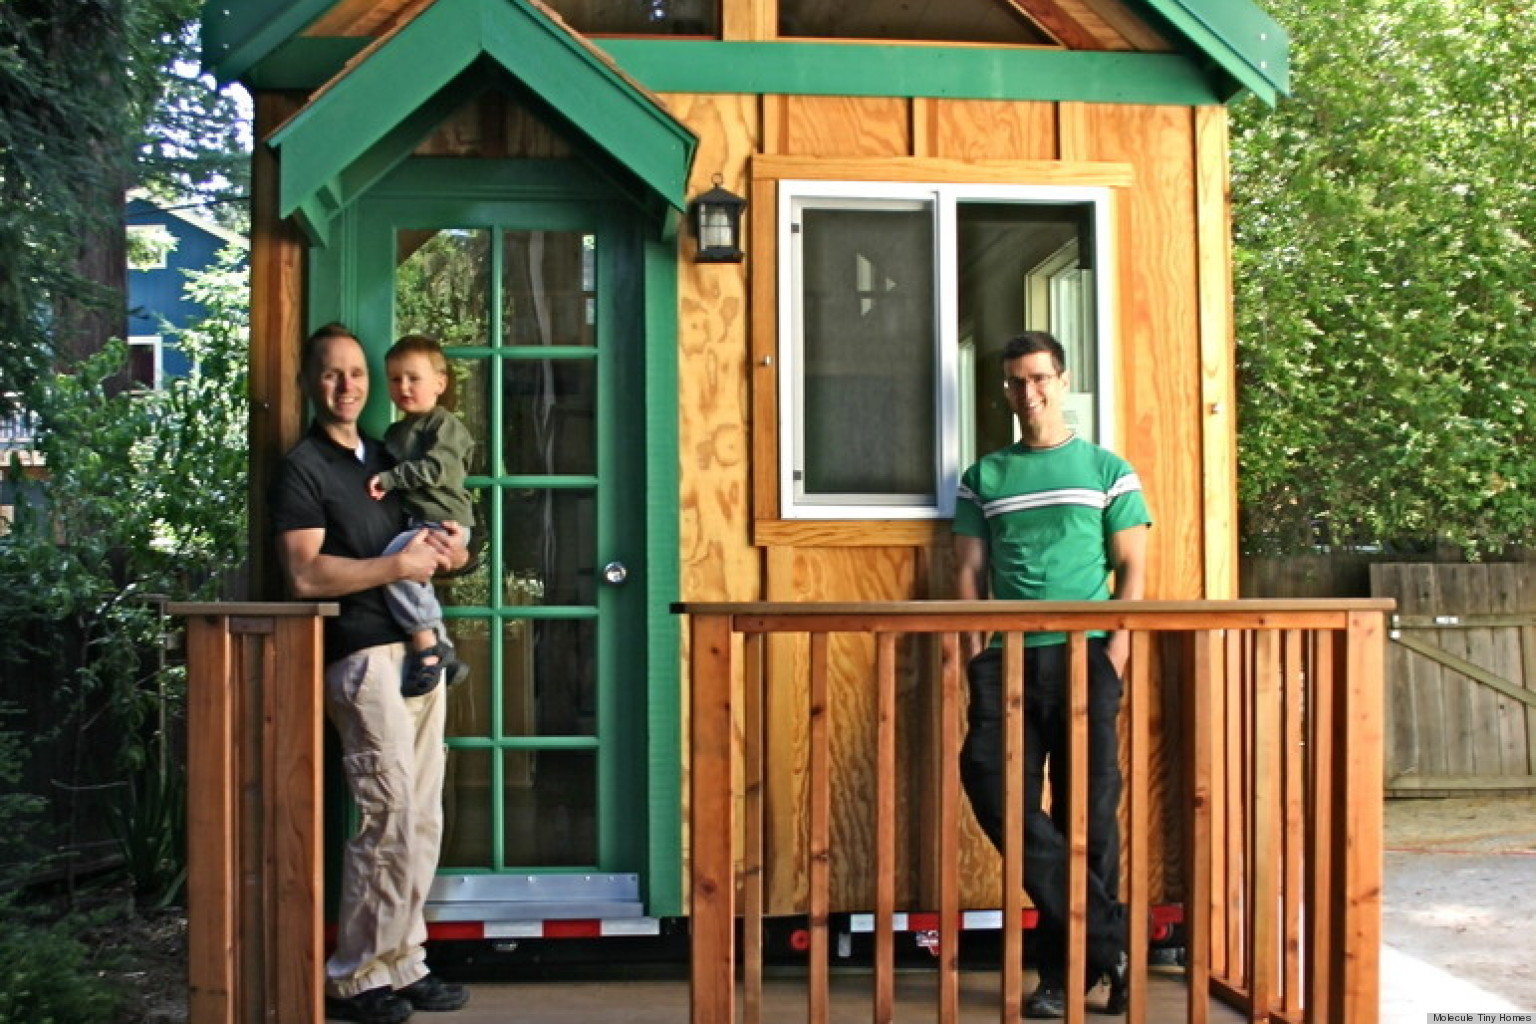 150 Sq Ft House Tour Inside This 150 Square Foot House By Molecule Tiny